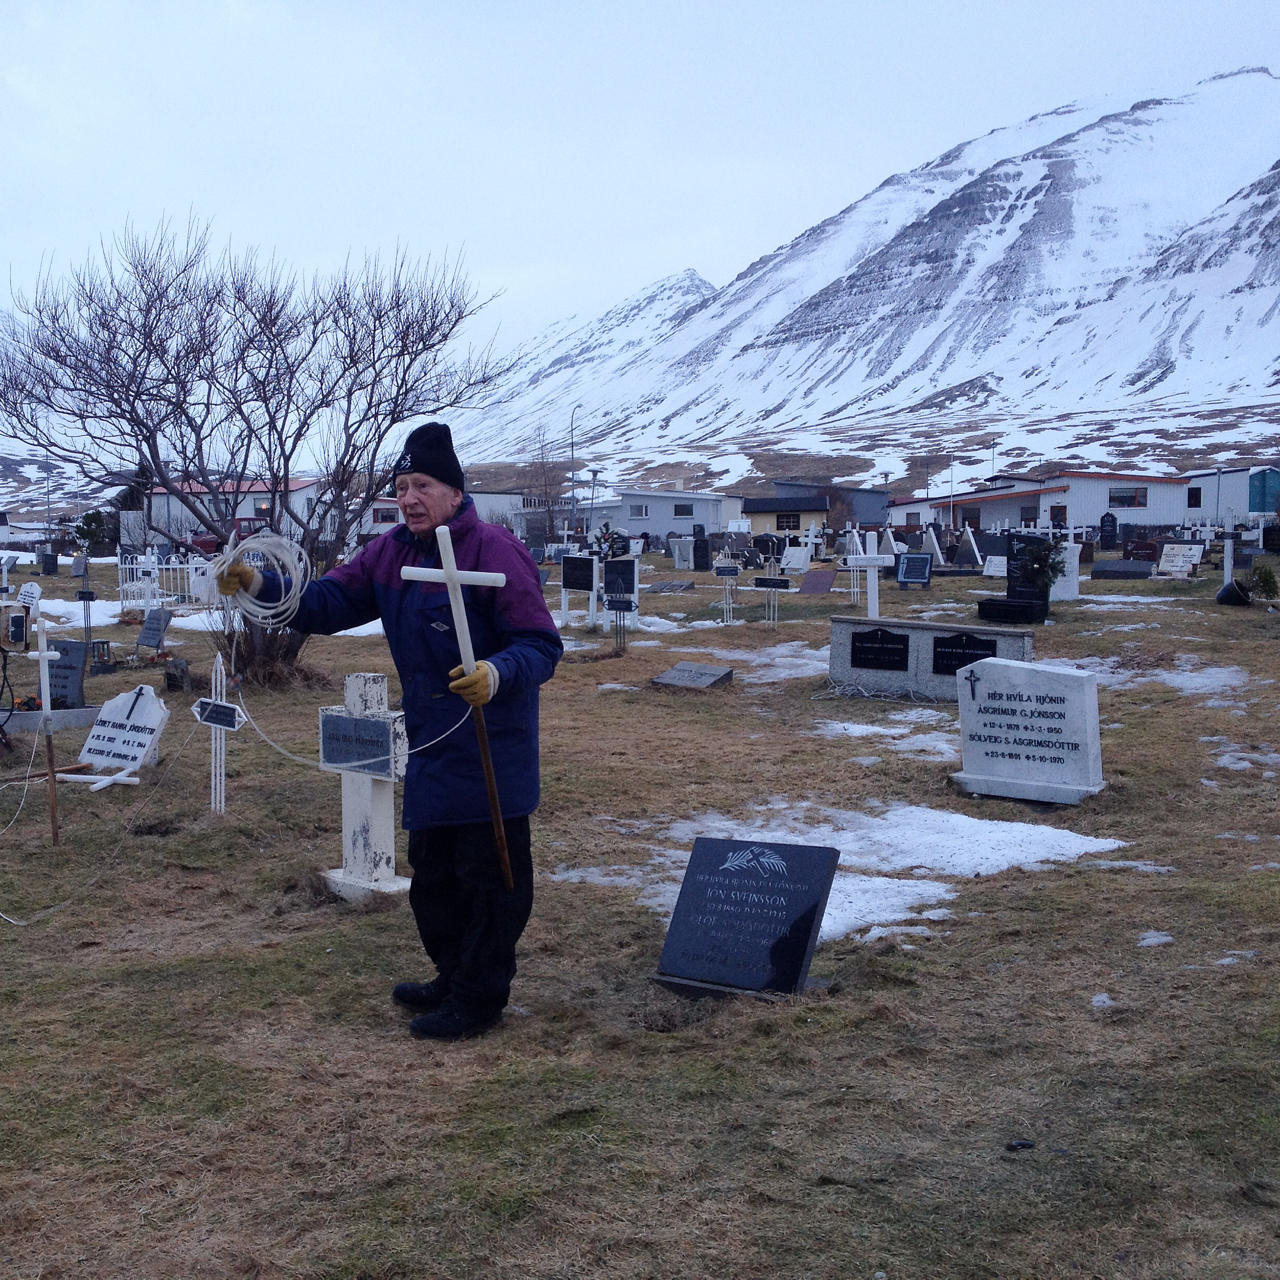 """There's been a bizarre thaw this week in Ólafsfjörður, with its seemingly bottomless mantle of snow disappearing overnight, in howling gales and warm rain. Under the ice in the town cemetery: upturned marble cherubs, candle wax, wilted bouquets. In a tradition """"stretching back as far as electricity, I'm sure,"""" says team leader Oskar, Icelanders make a donation in return for the upkeep of a luminescent cross, dug into a family grave for the month of Christmas. With snowflakes set to return after sundown, elderly members of the local Rotary Club have taken the opportunity to dig up the glowing crosses from the earth. Here, one will set you back 3,000 Krona. """"Cheapest in Iceland,"""" Oskar says proudly."""